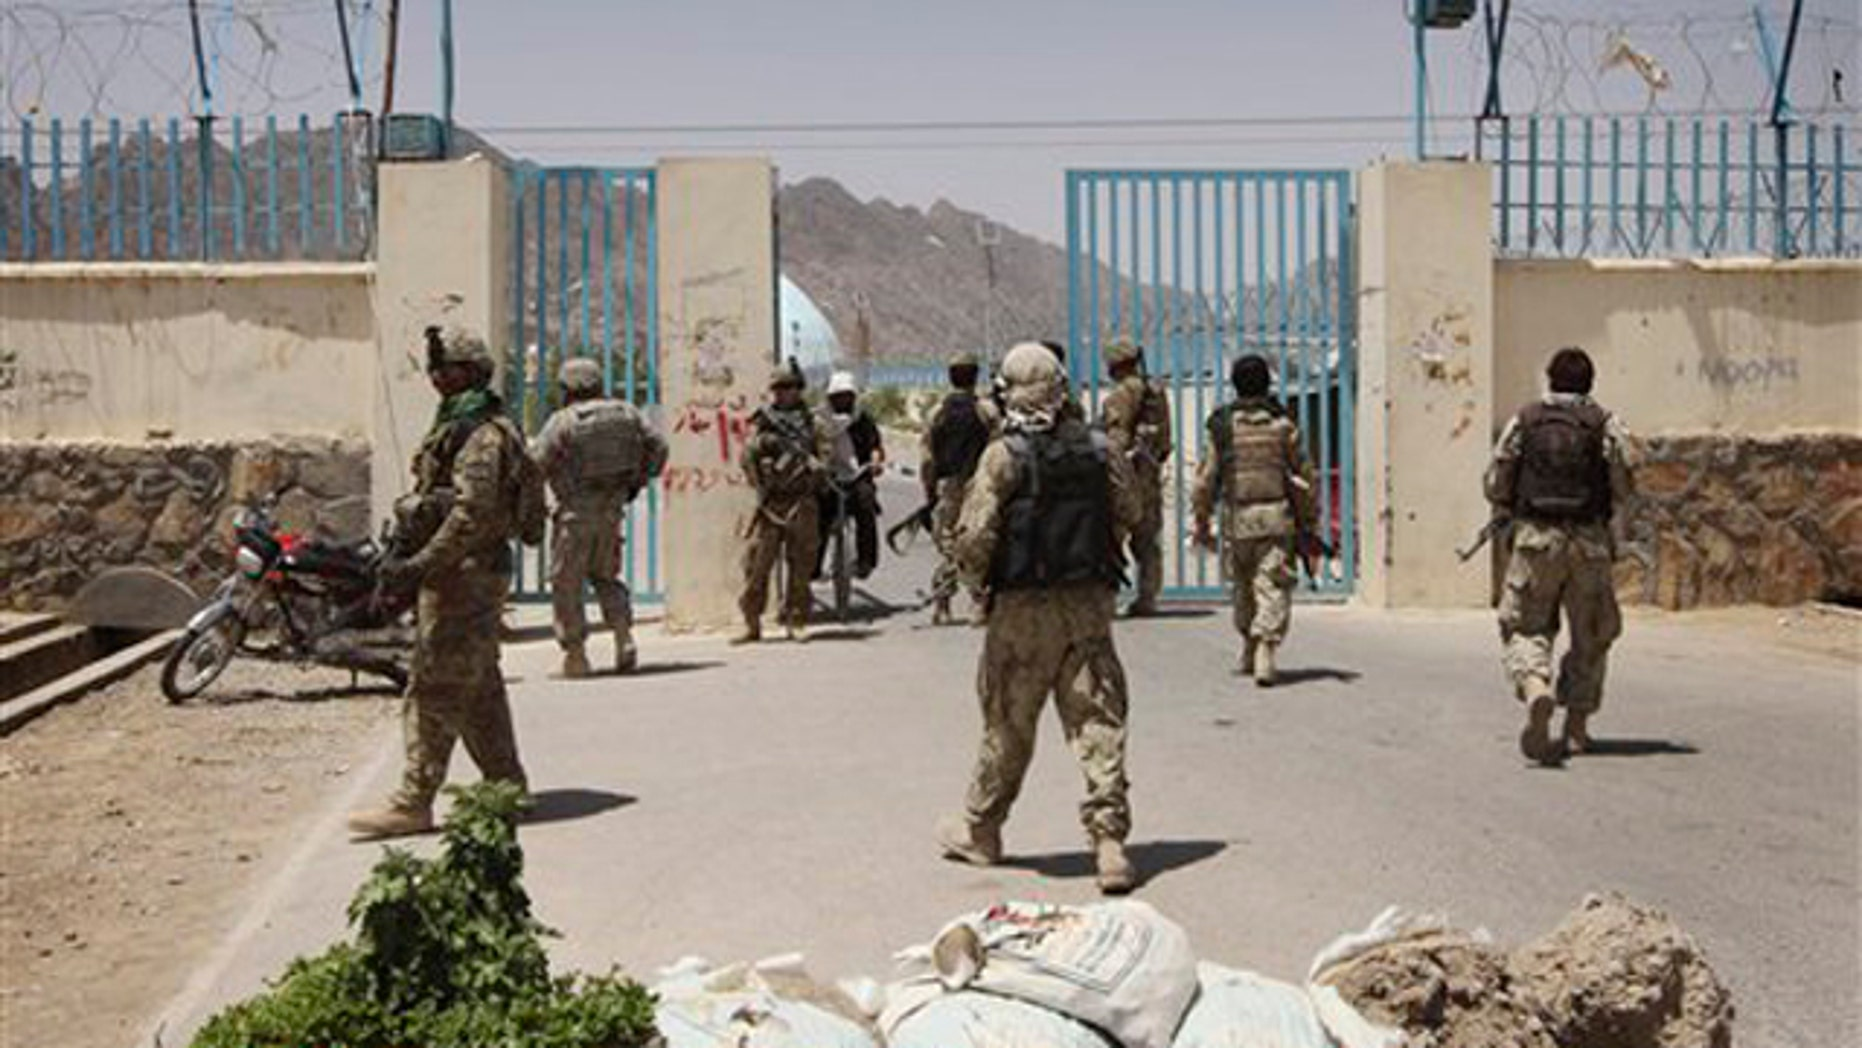 U.S. soldiers, left, and Afghan Police Commando forces, right, are seen at a university after a bomb blast in Kandahar, Afghanistan, on June 4.